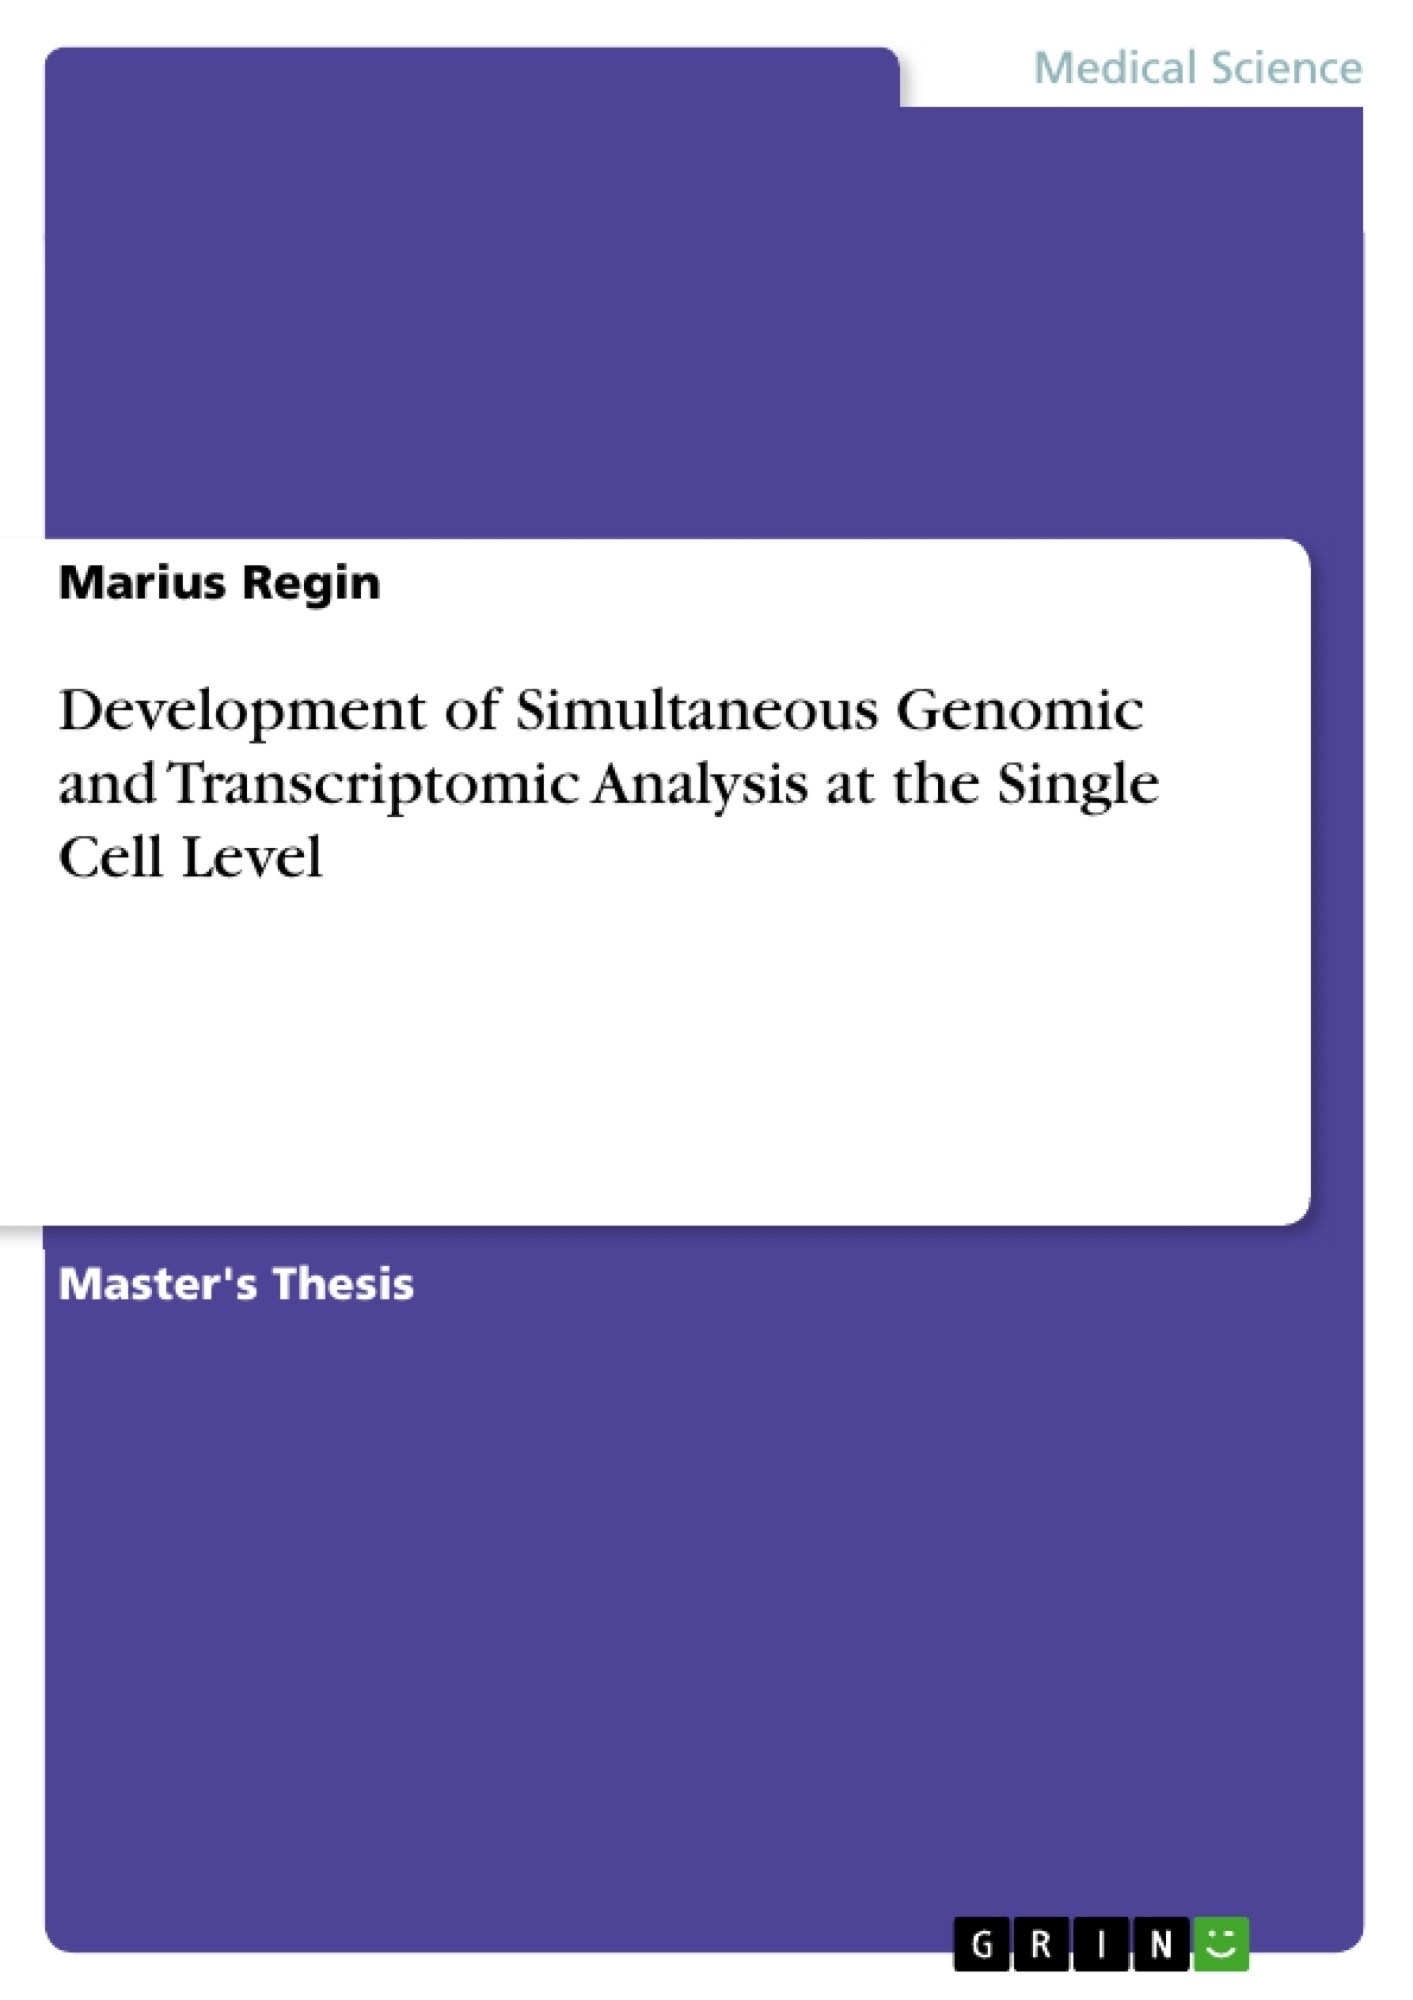 Title: Development of Simultaneous Genomic and Transcriptomic Analysis at the Single Cell Level